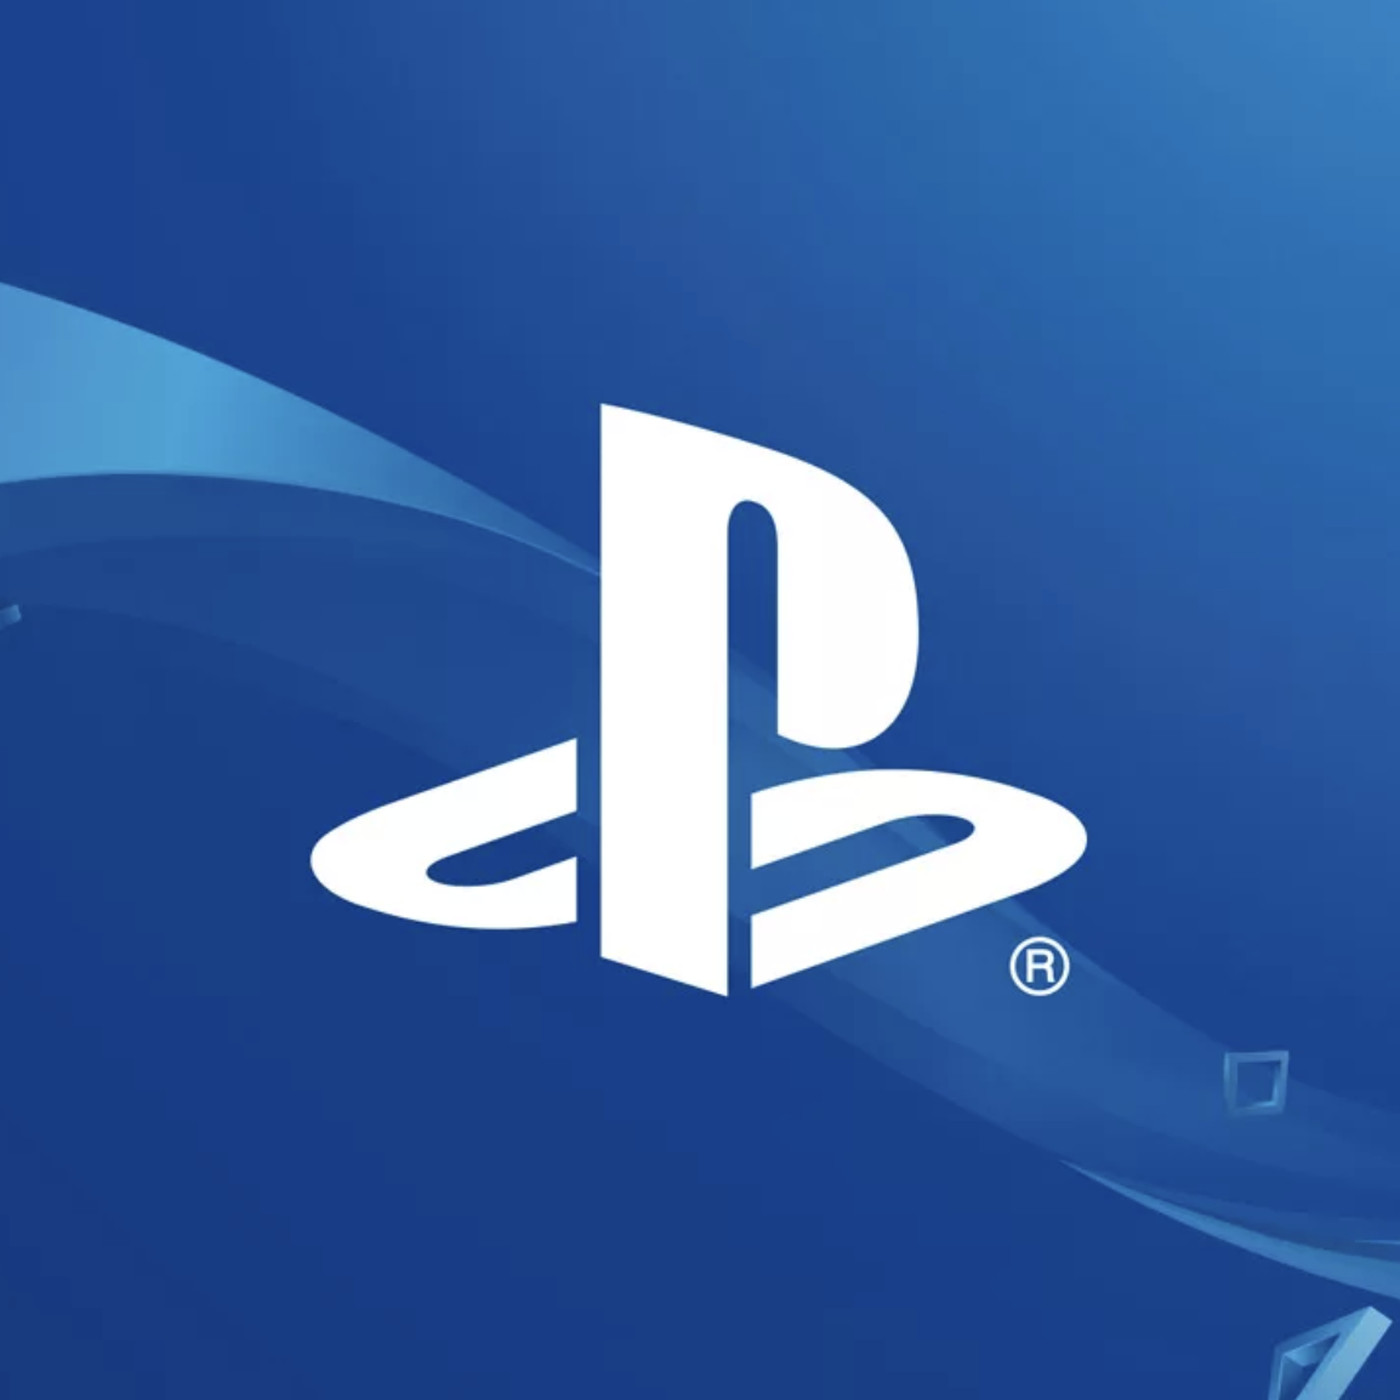 Sony Is Shutting Down Its Live Tv Service Playstation Vue In January 2020 The Verge